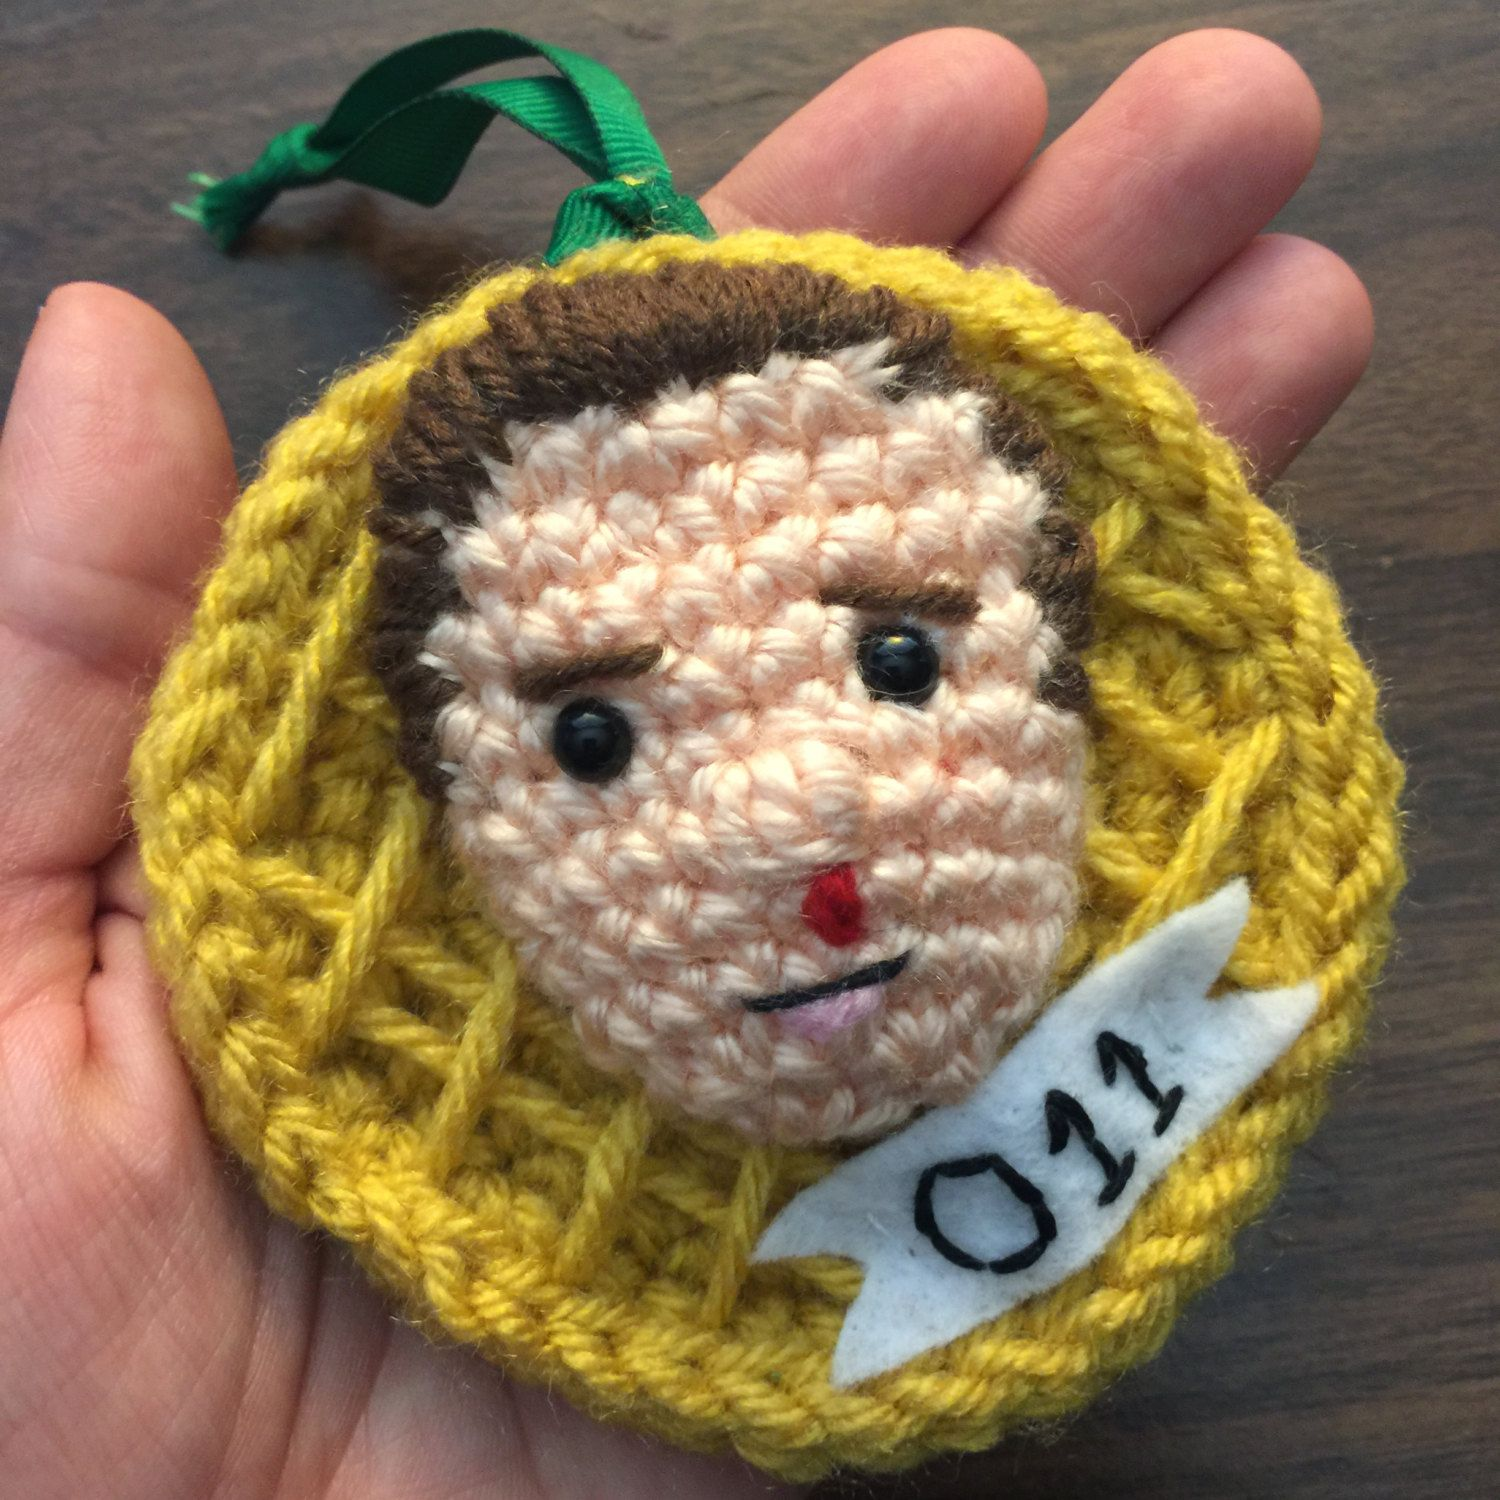 Stranger things eleven waffle crochet pattern christmas ornament stranger things eleven waffle crochet pattern christmas ornament keychain pursehandbag charm by craftyiscoolcrochet on bankloansurffo Image collections